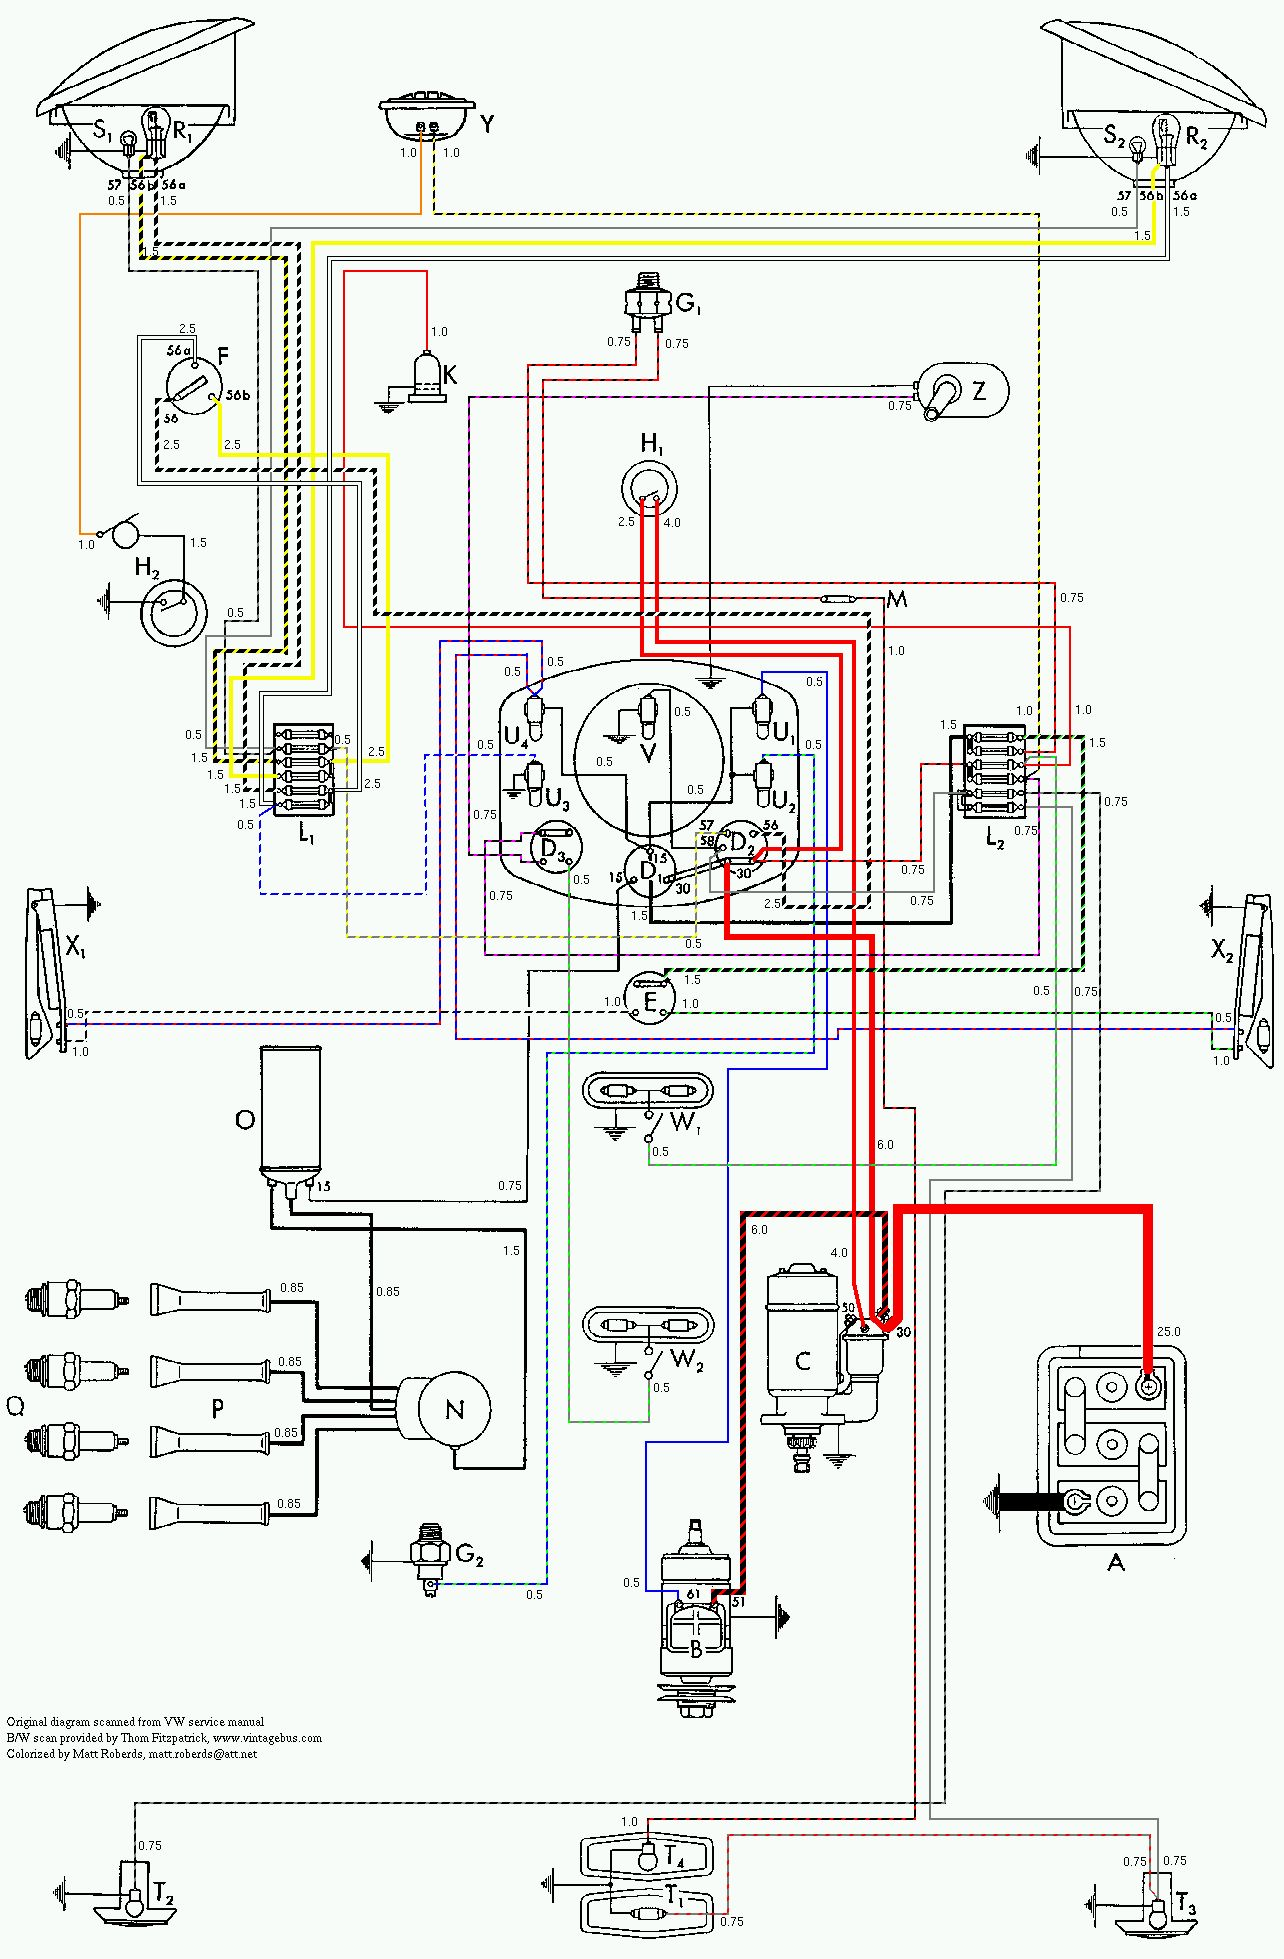 Fine How To Wire Ssr Thick Ibanez 3 Way Switch Wiring Shaped Dimarzio Diagrams 3 Humbucker Strat Youthful Security Wires PurpleStratocaster Wiring Options VintageBus